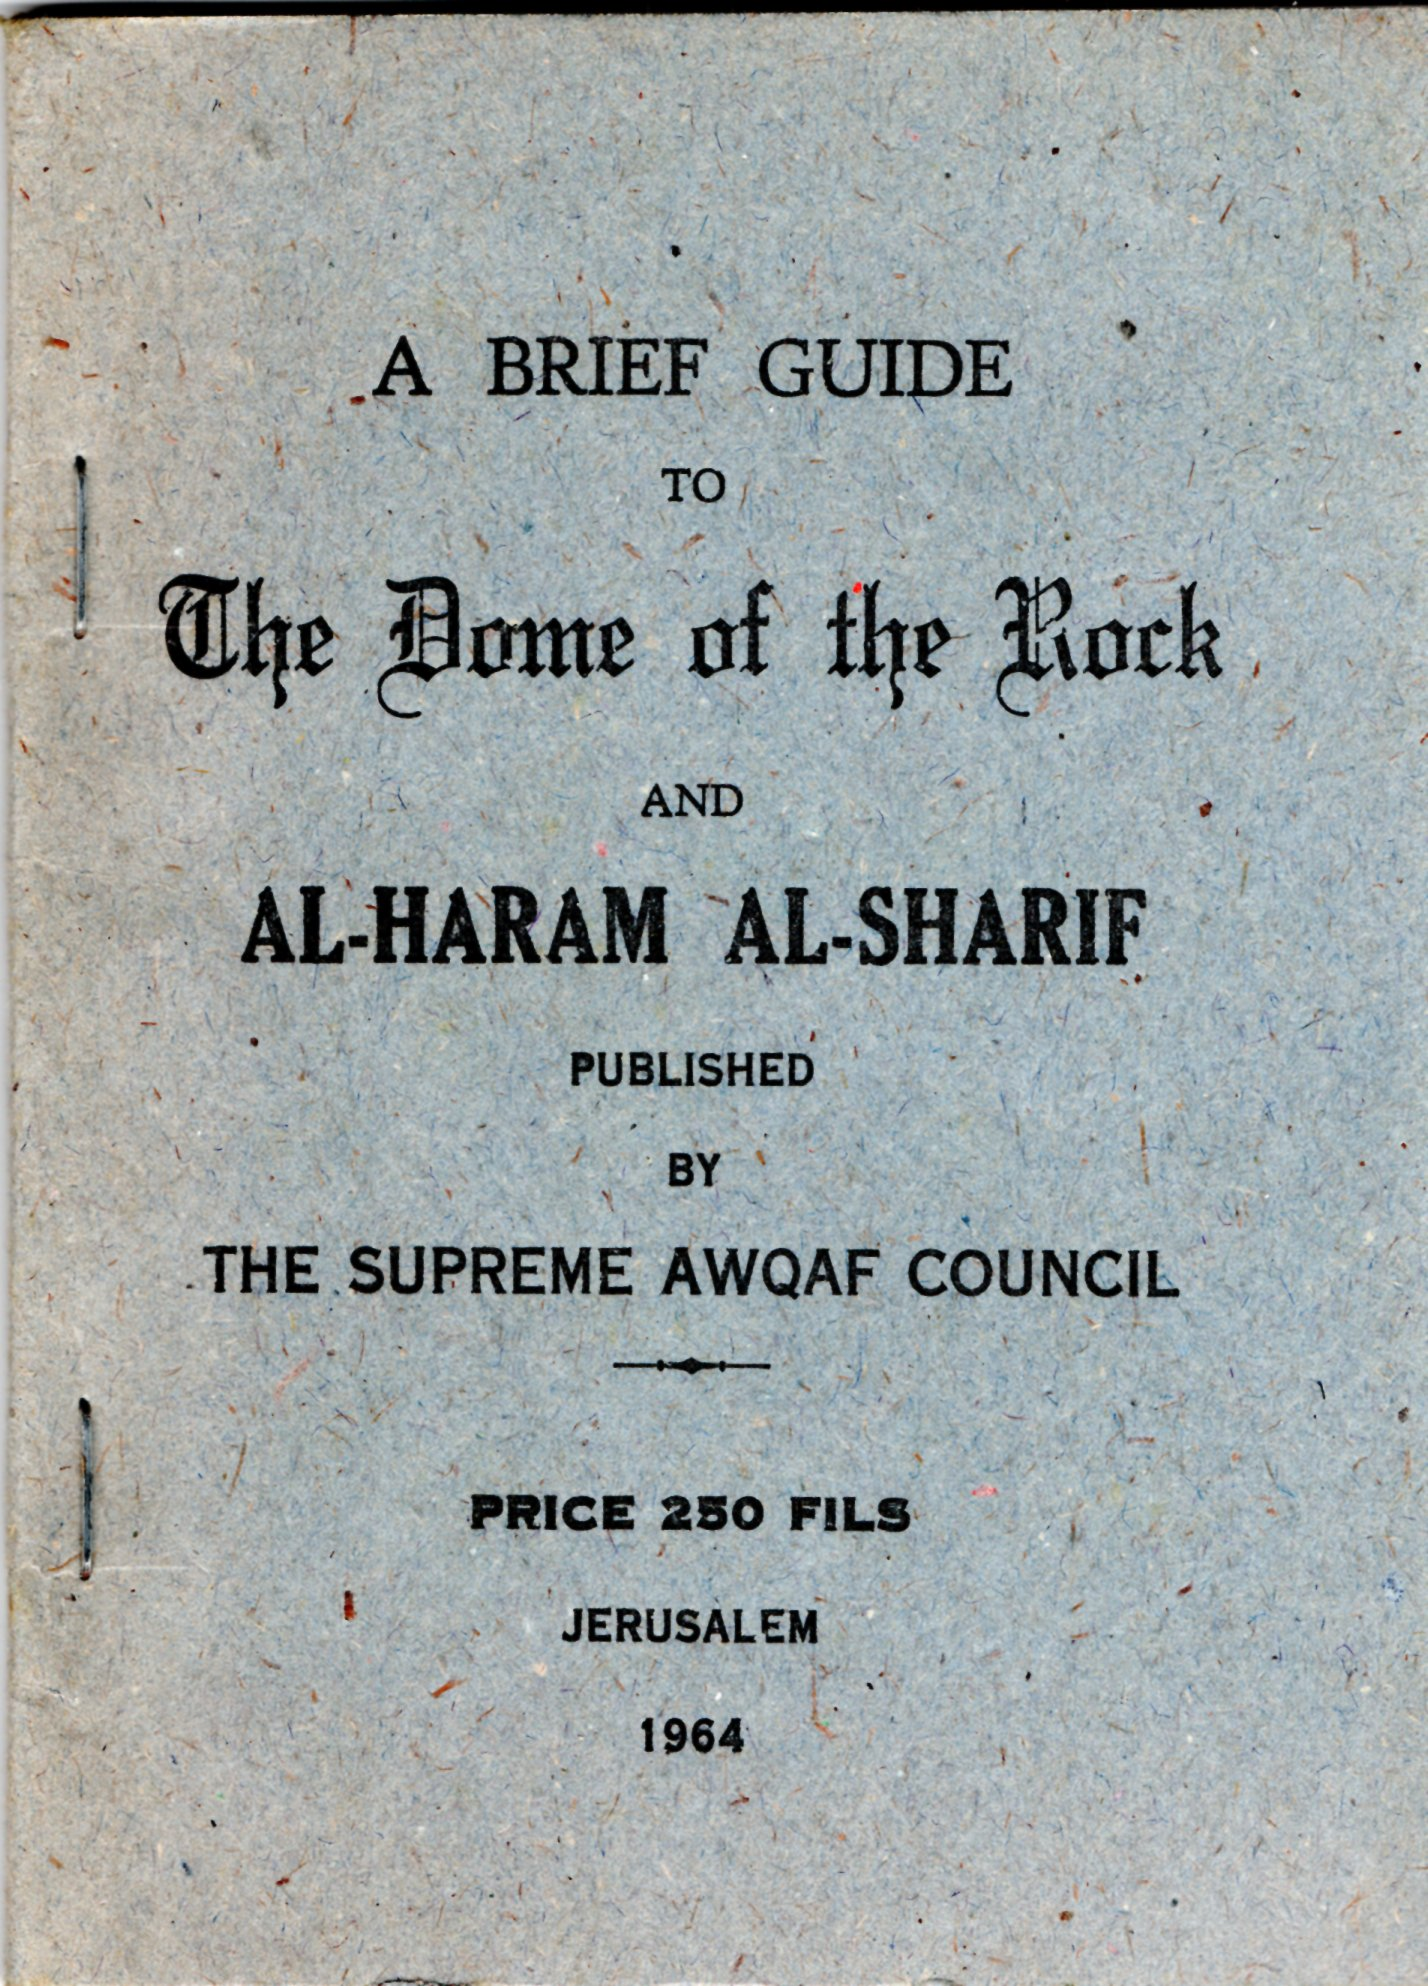 Image for A Breif Guide to the Dome of the Rock and Al-Haram Al-Sharif